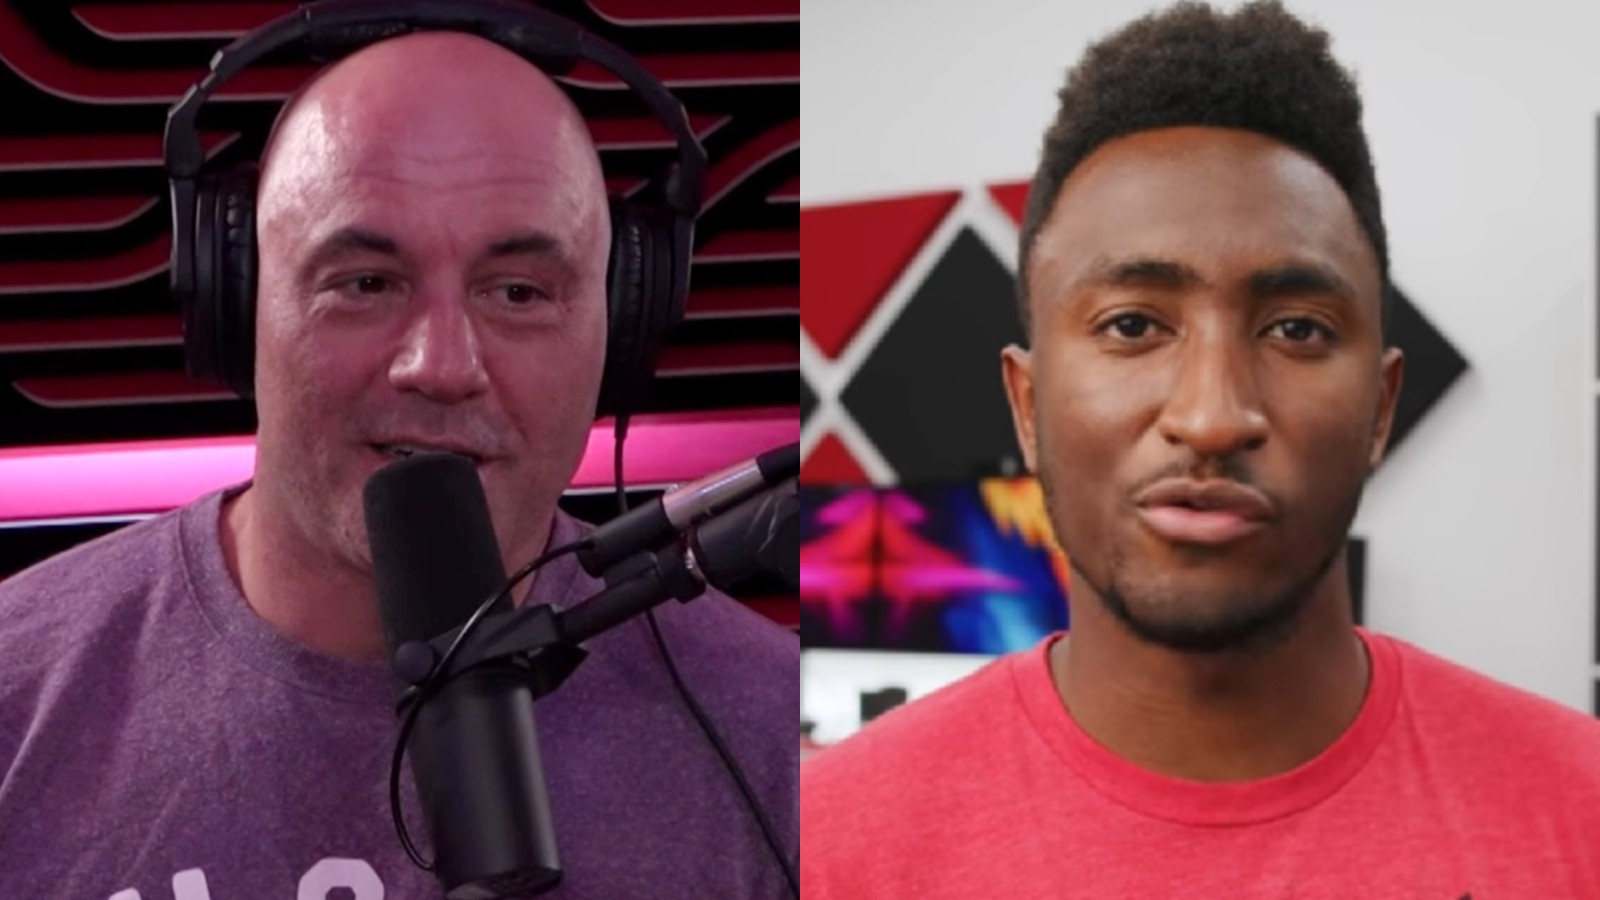 Joe Rogan next to YouTuber MKBHD